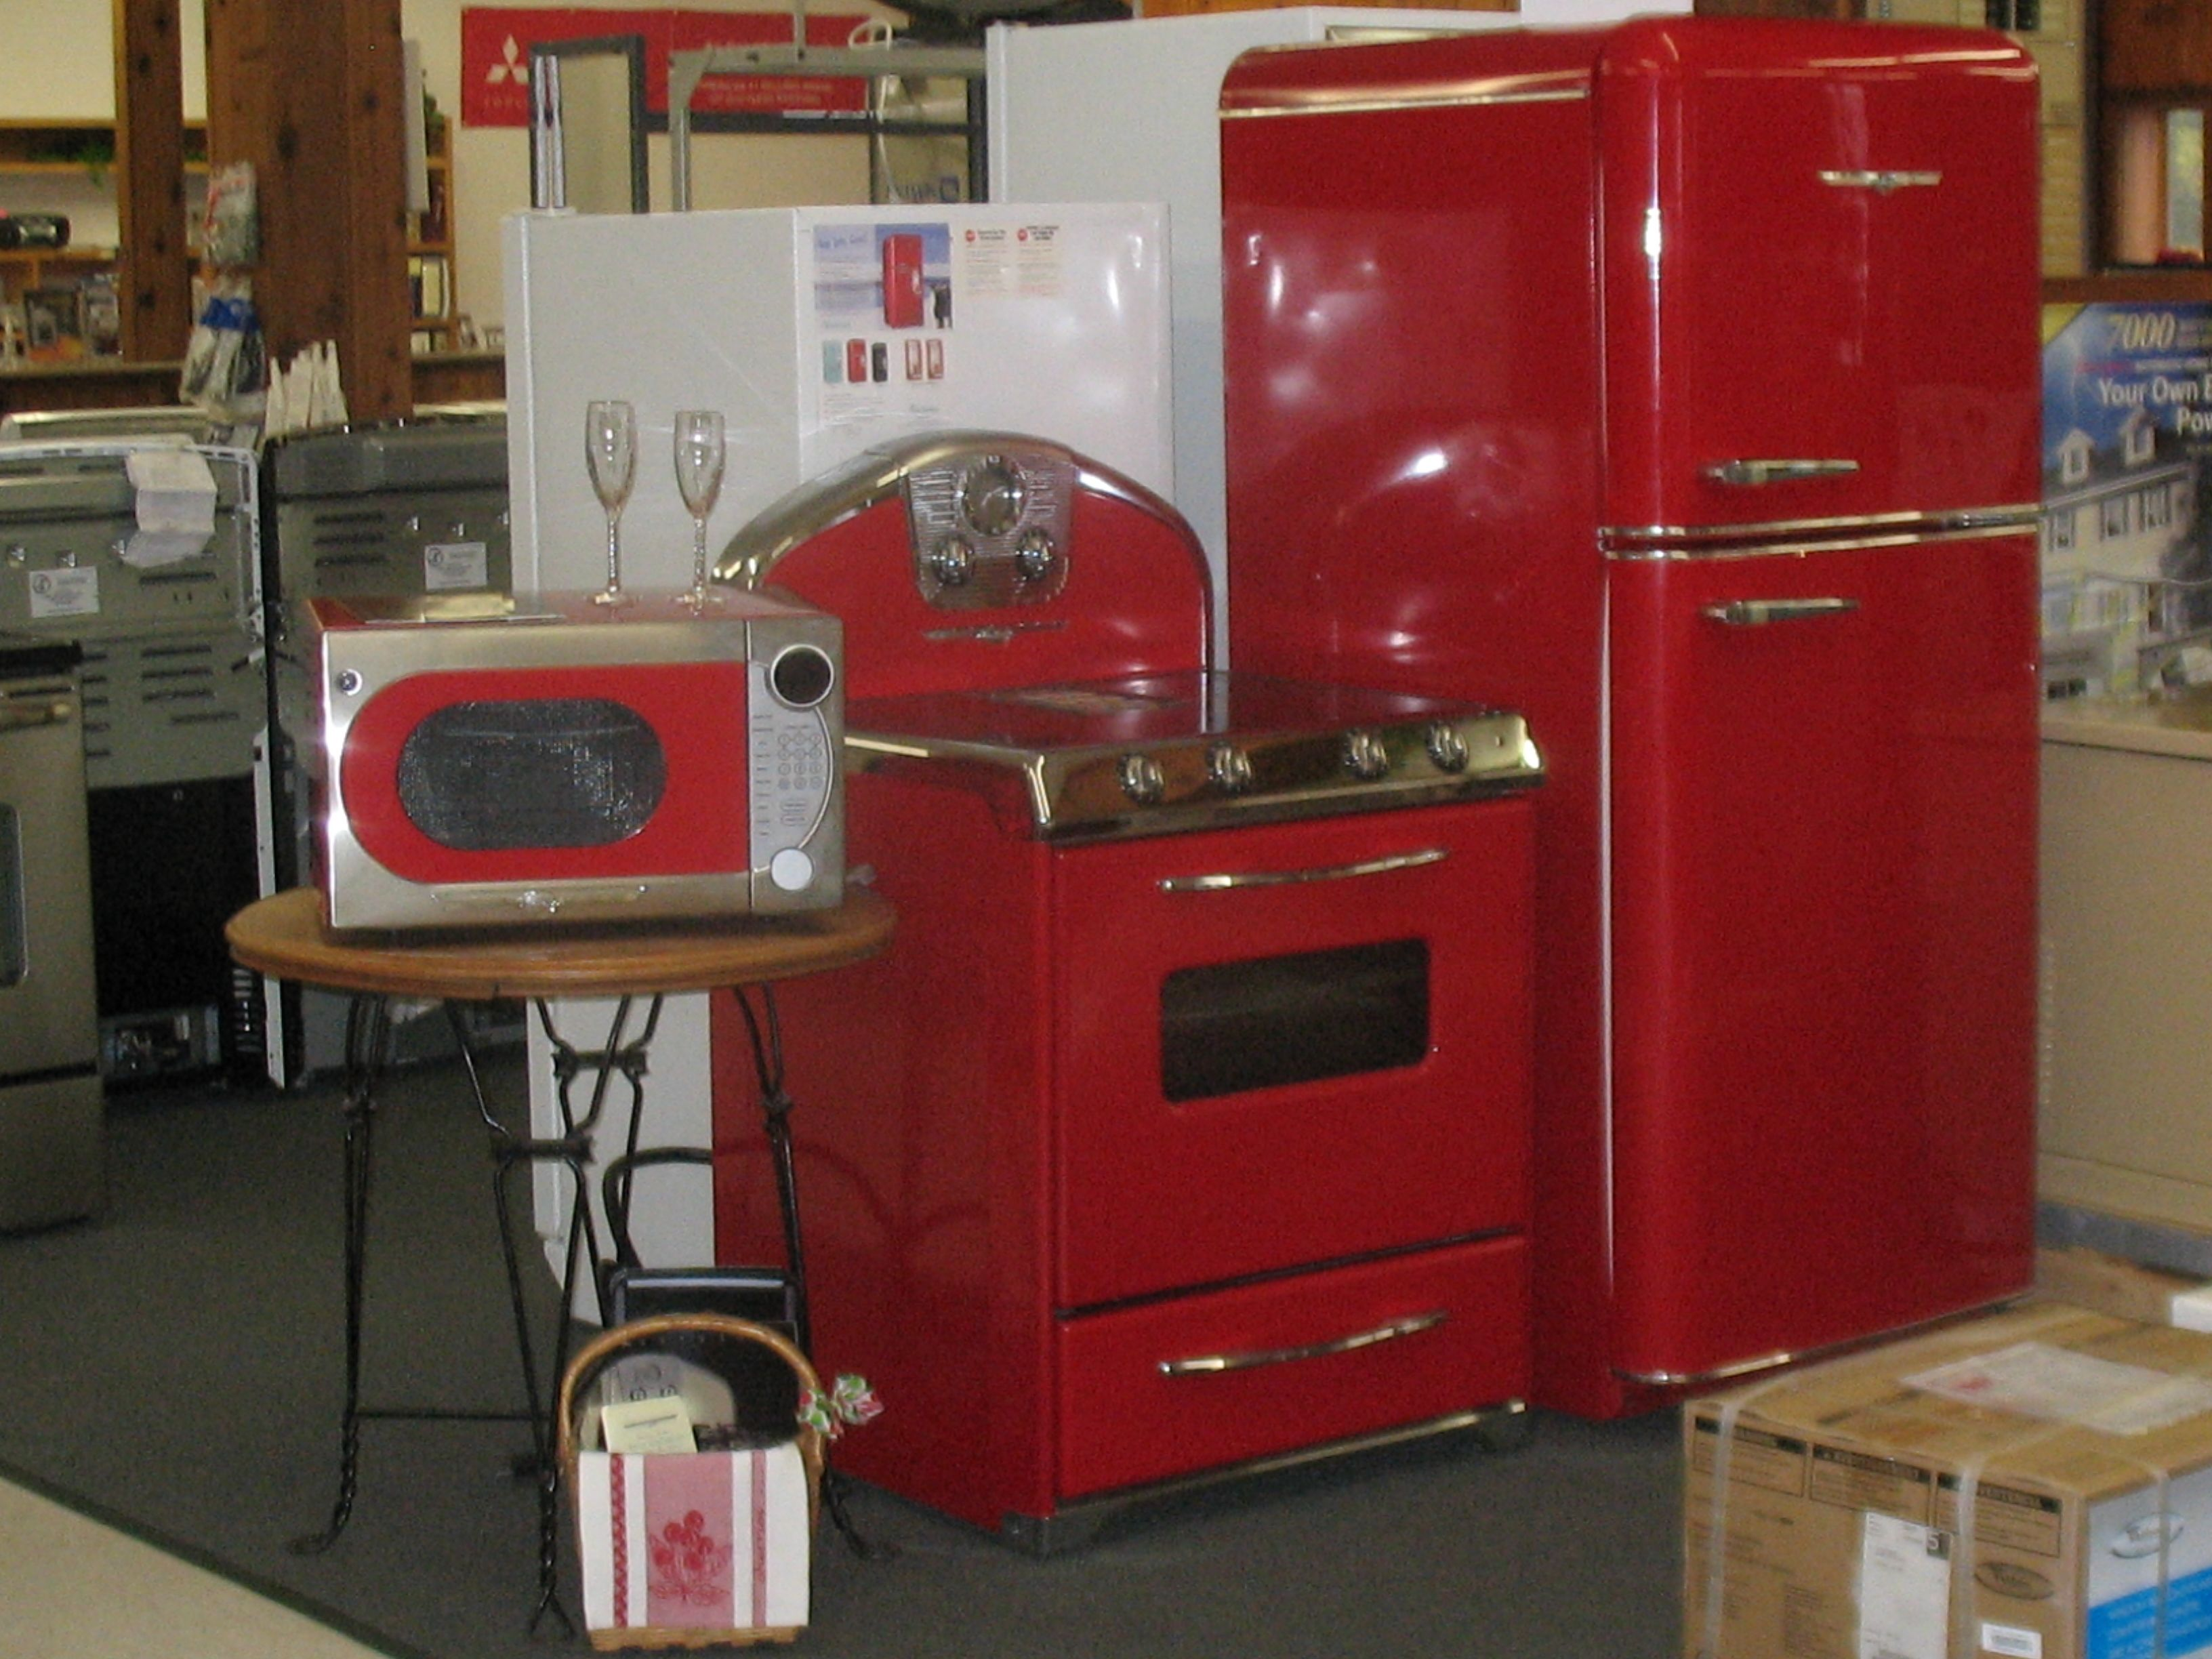 Retro 1950s Styled Kitchen Appliances With All The Modern